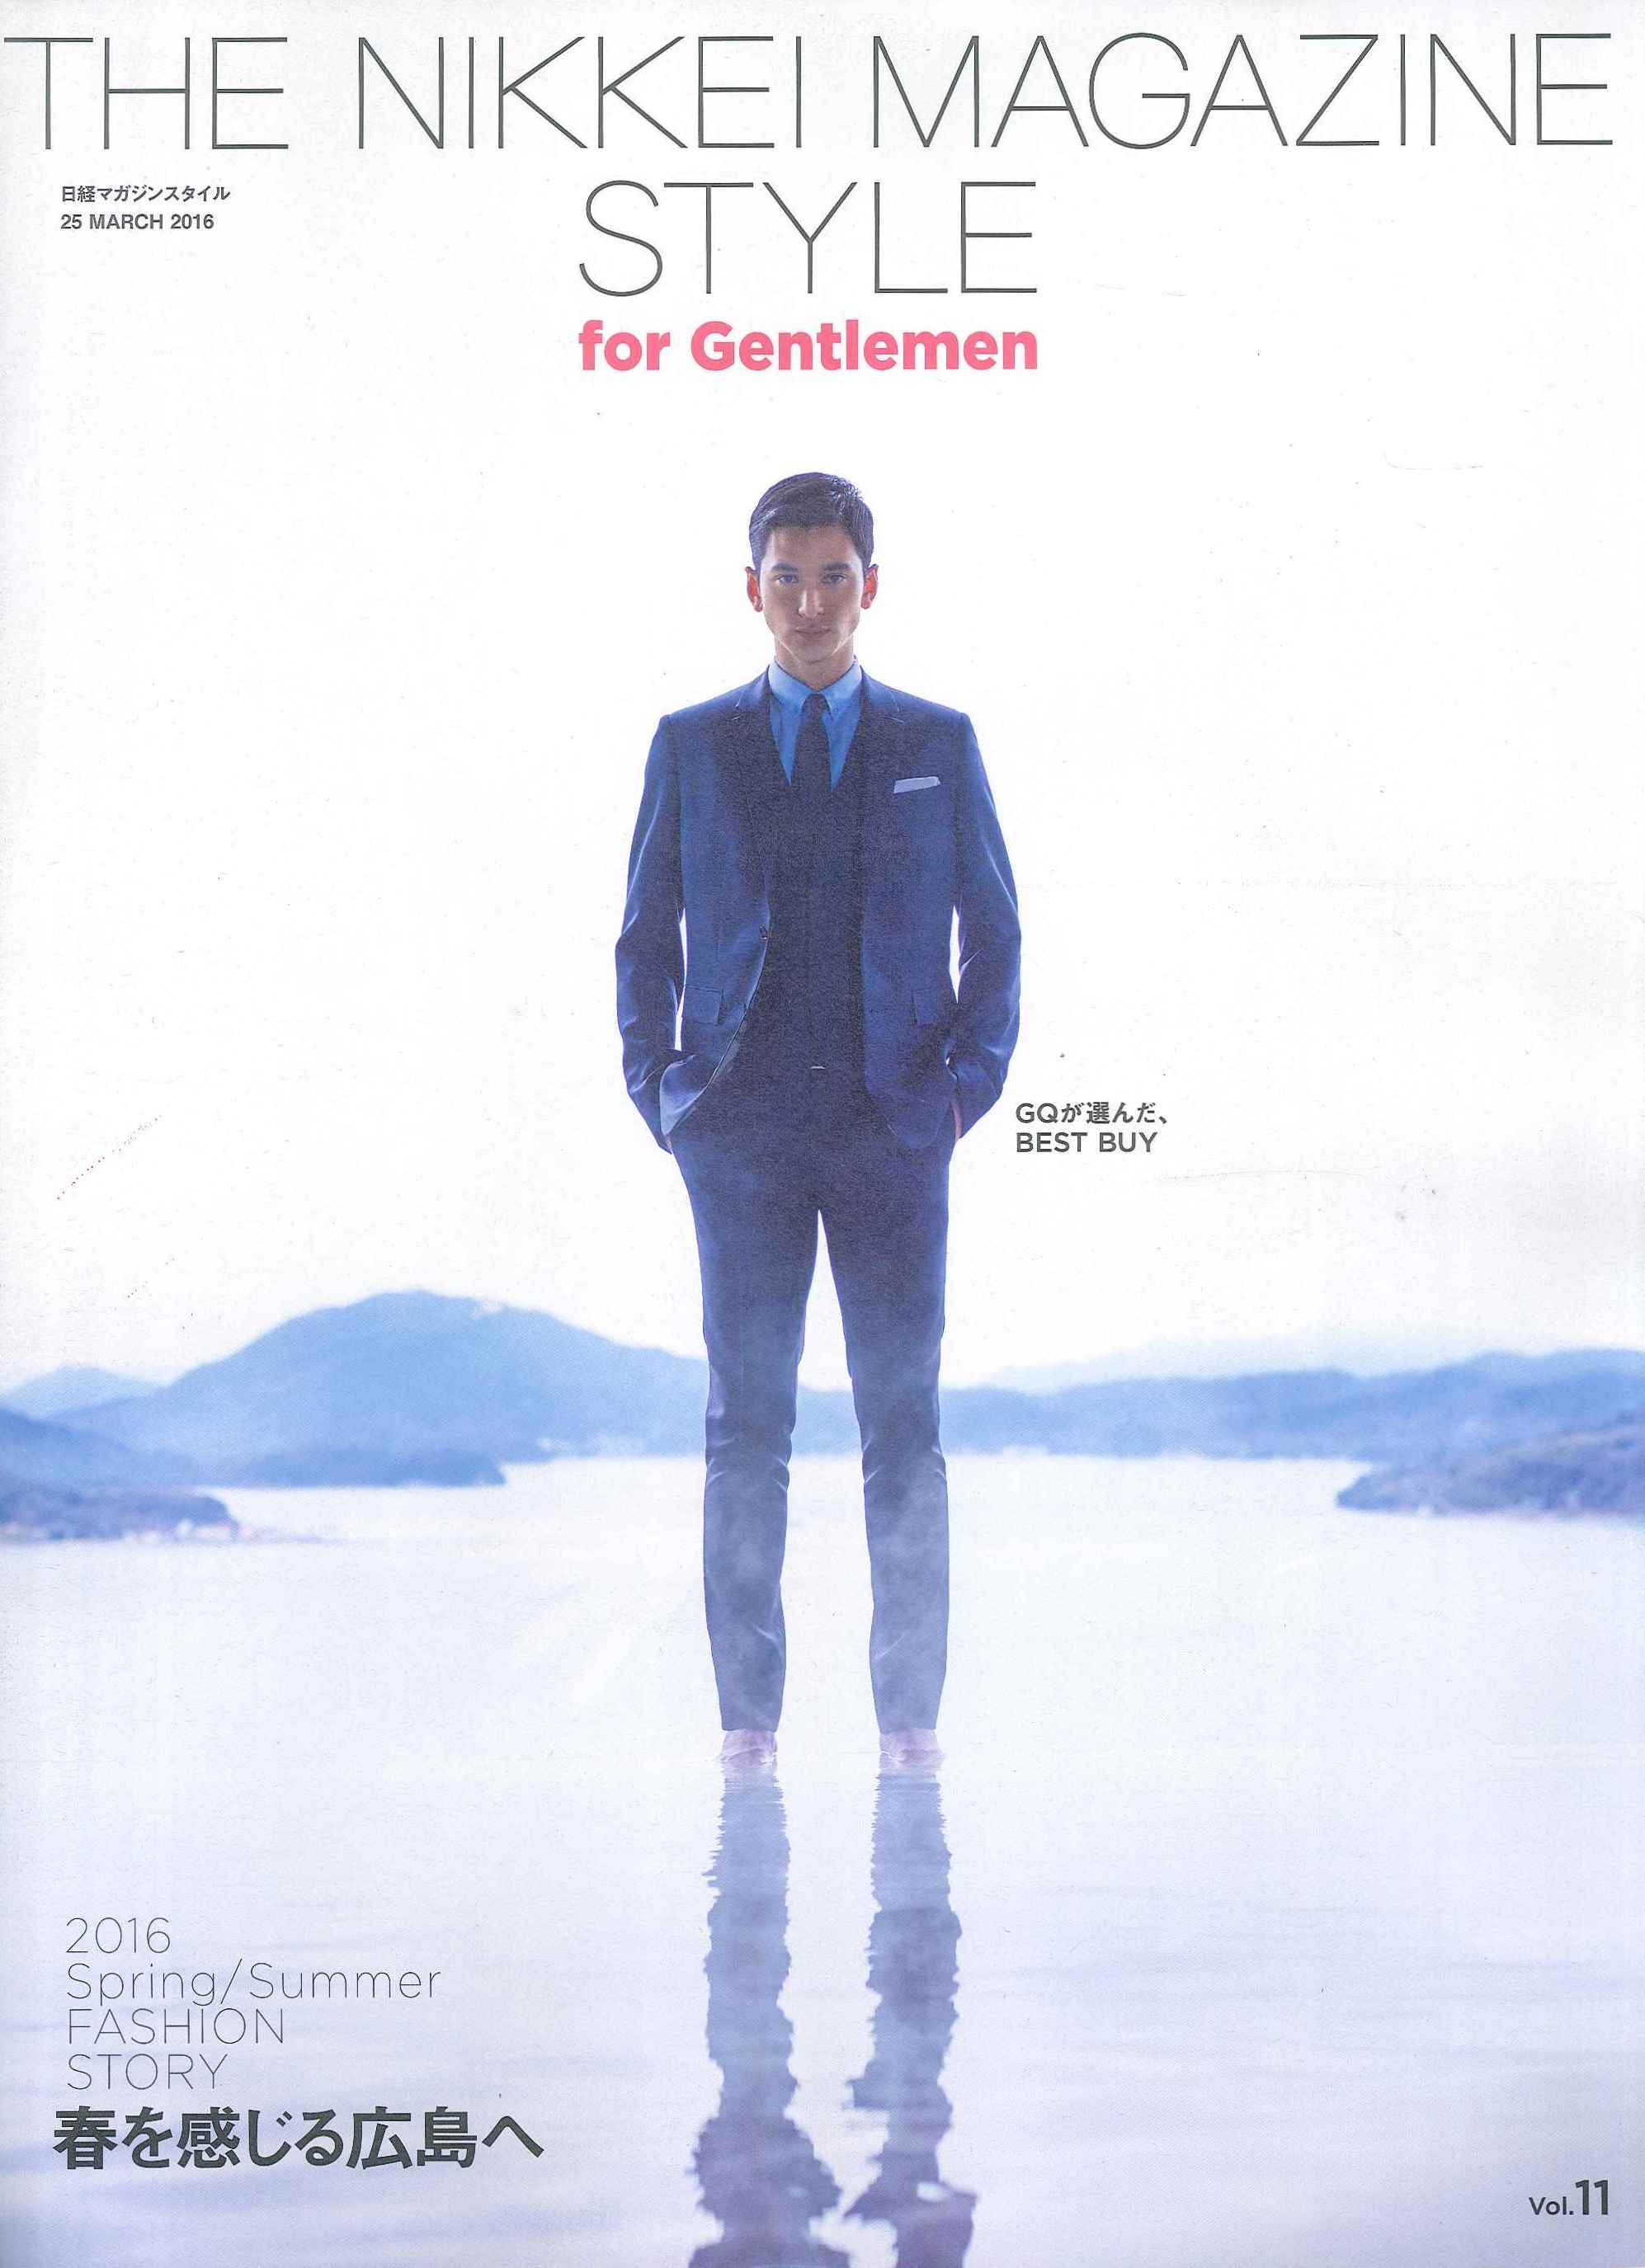 THE NIKKEI MAGAZINE STYLE for Gentlemen 3/25号 baxter掲載